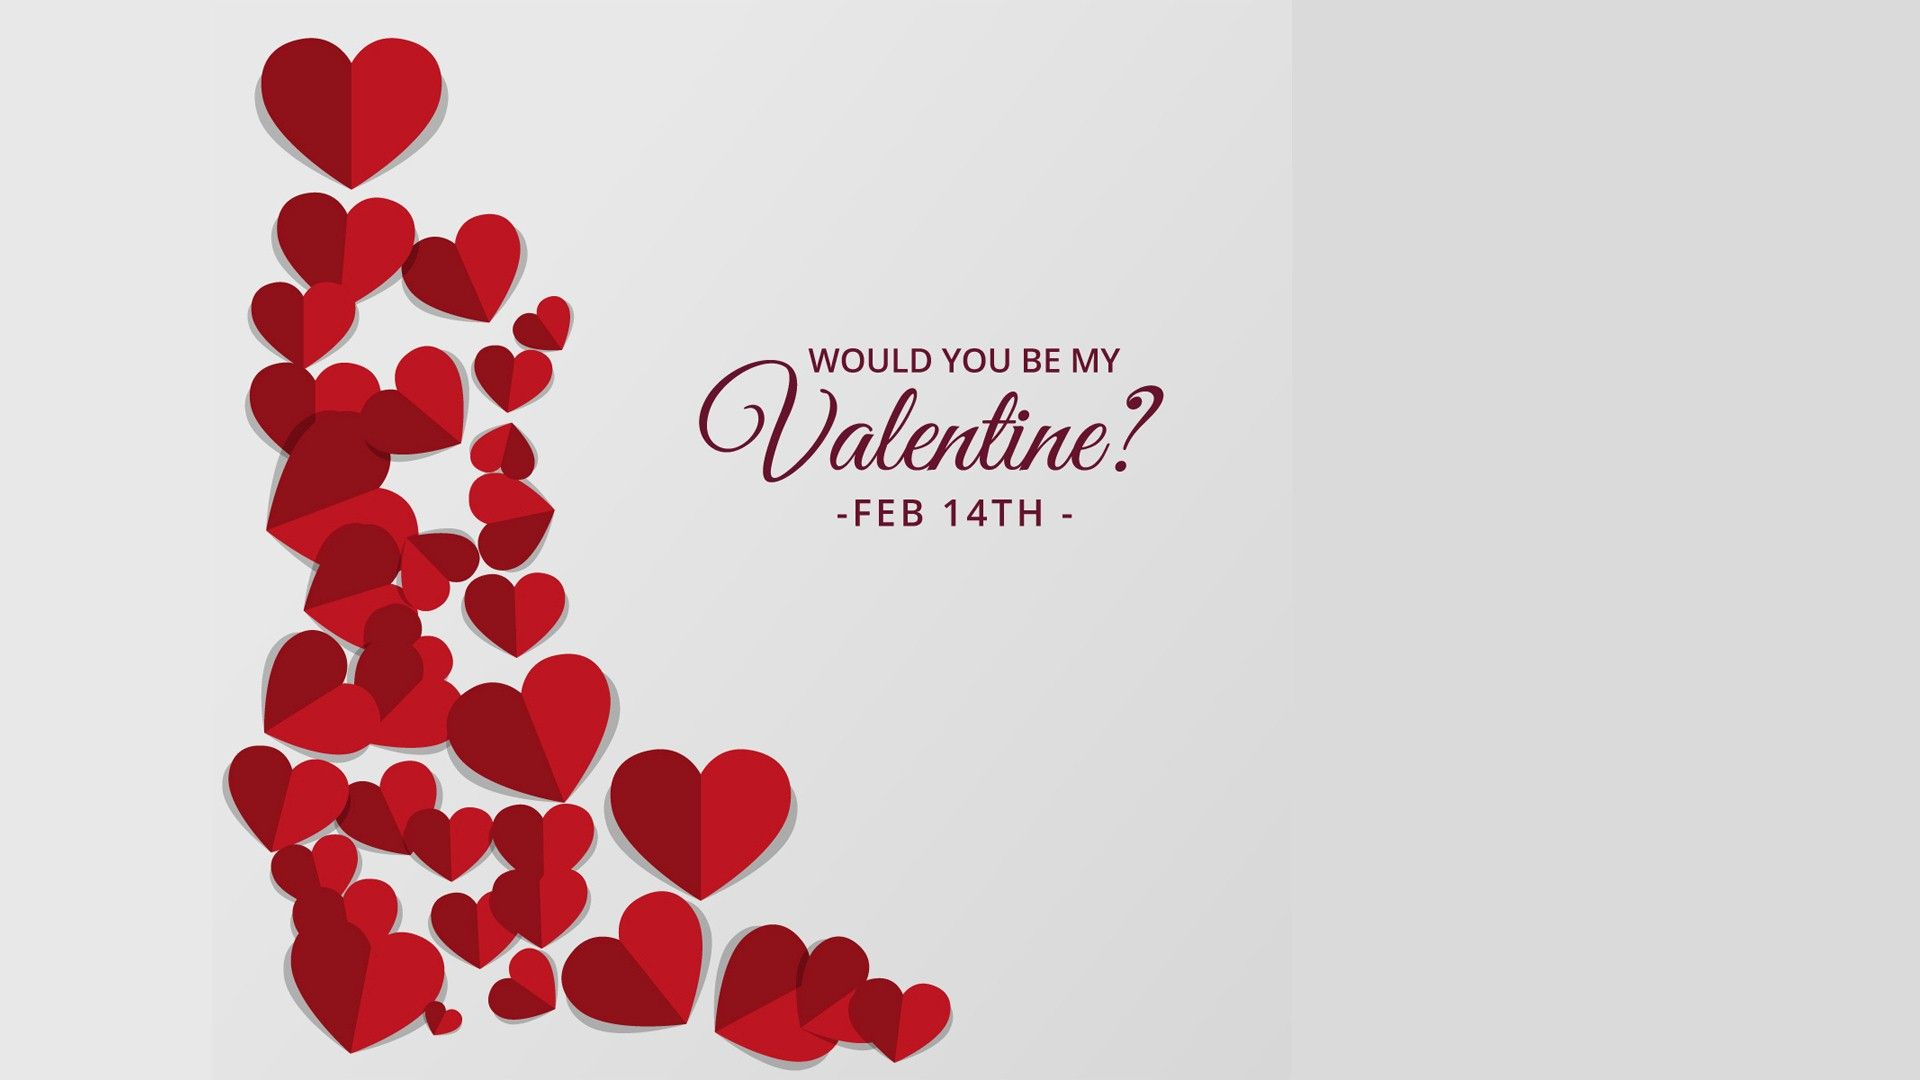 1920x1080 Be My Valentine HD Wallpaper | HD Wallpapers